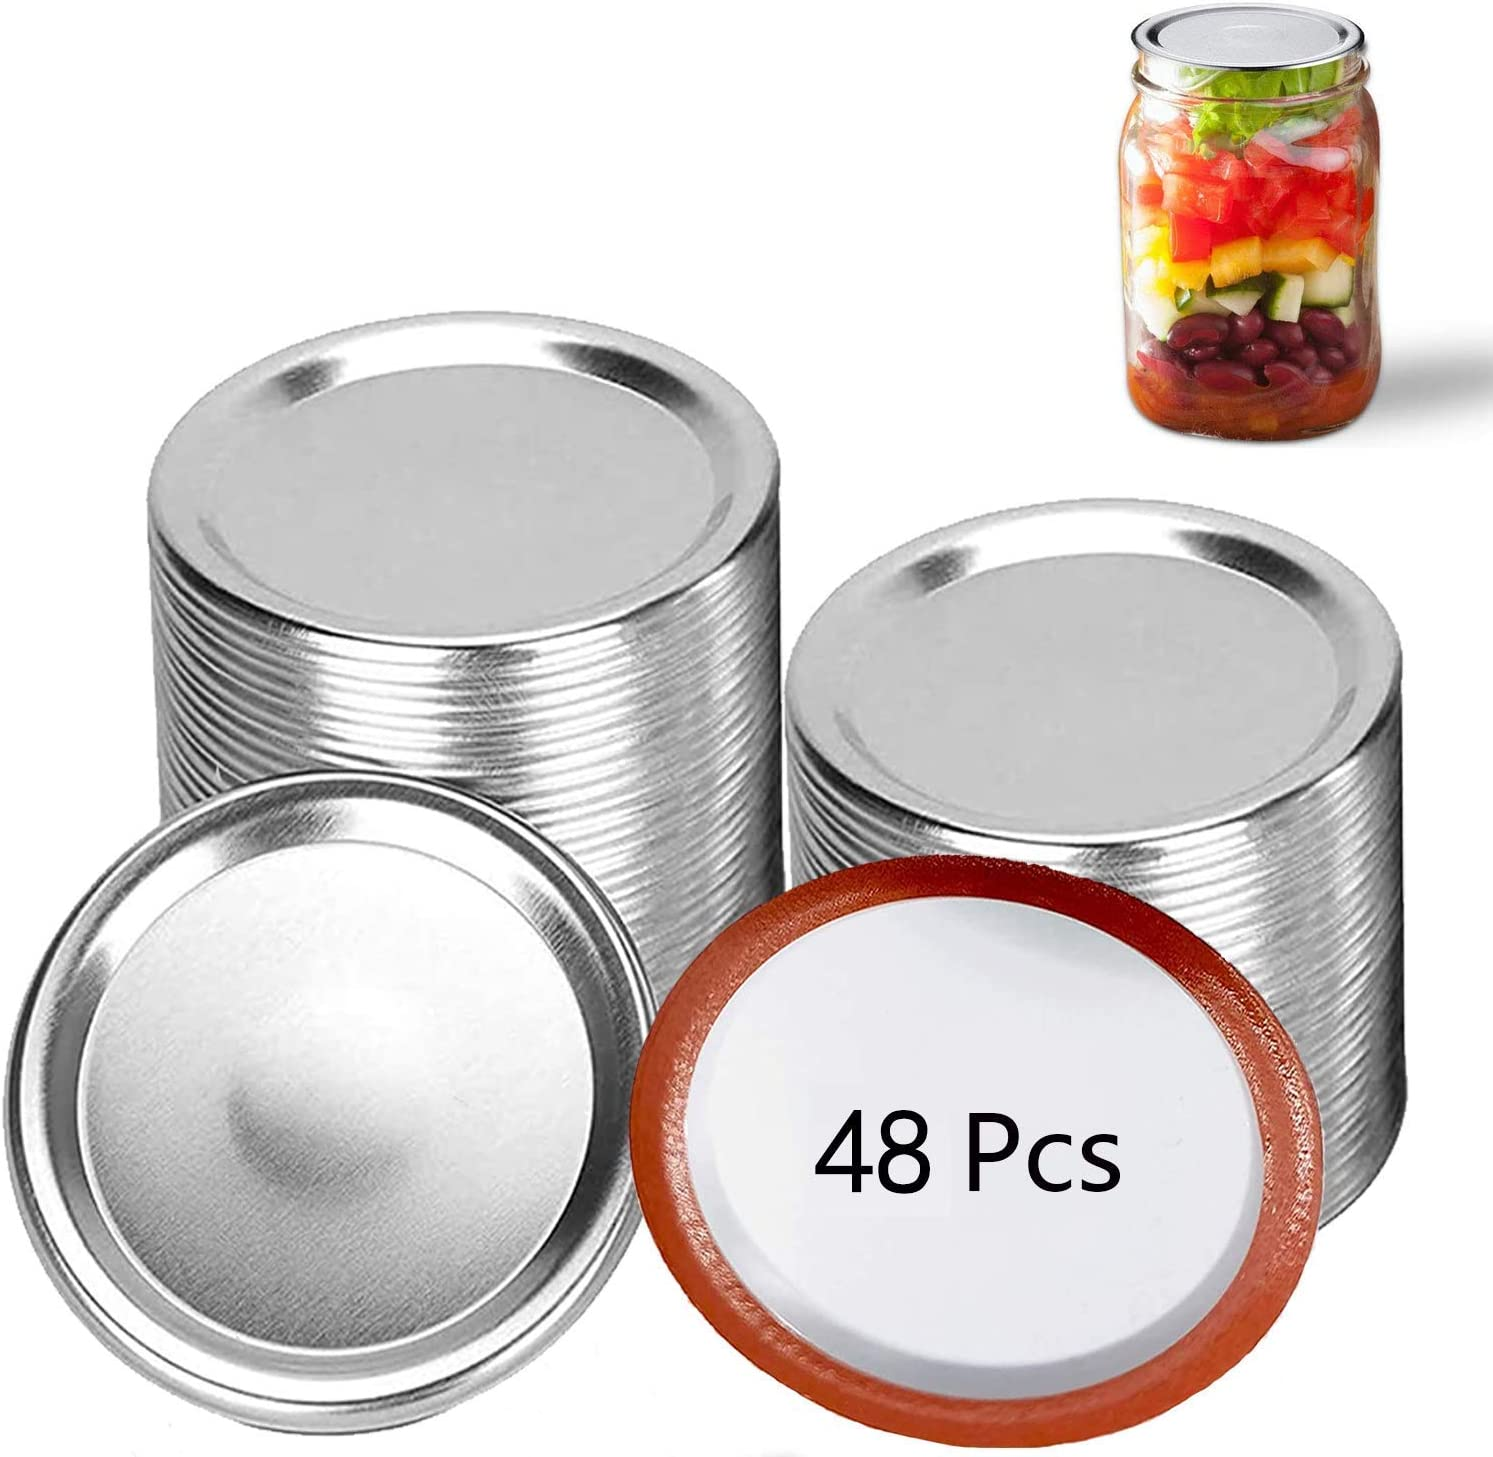 48 Pcs Regular Mouth Canning Lids Lids for Mason Jar Canning Lids